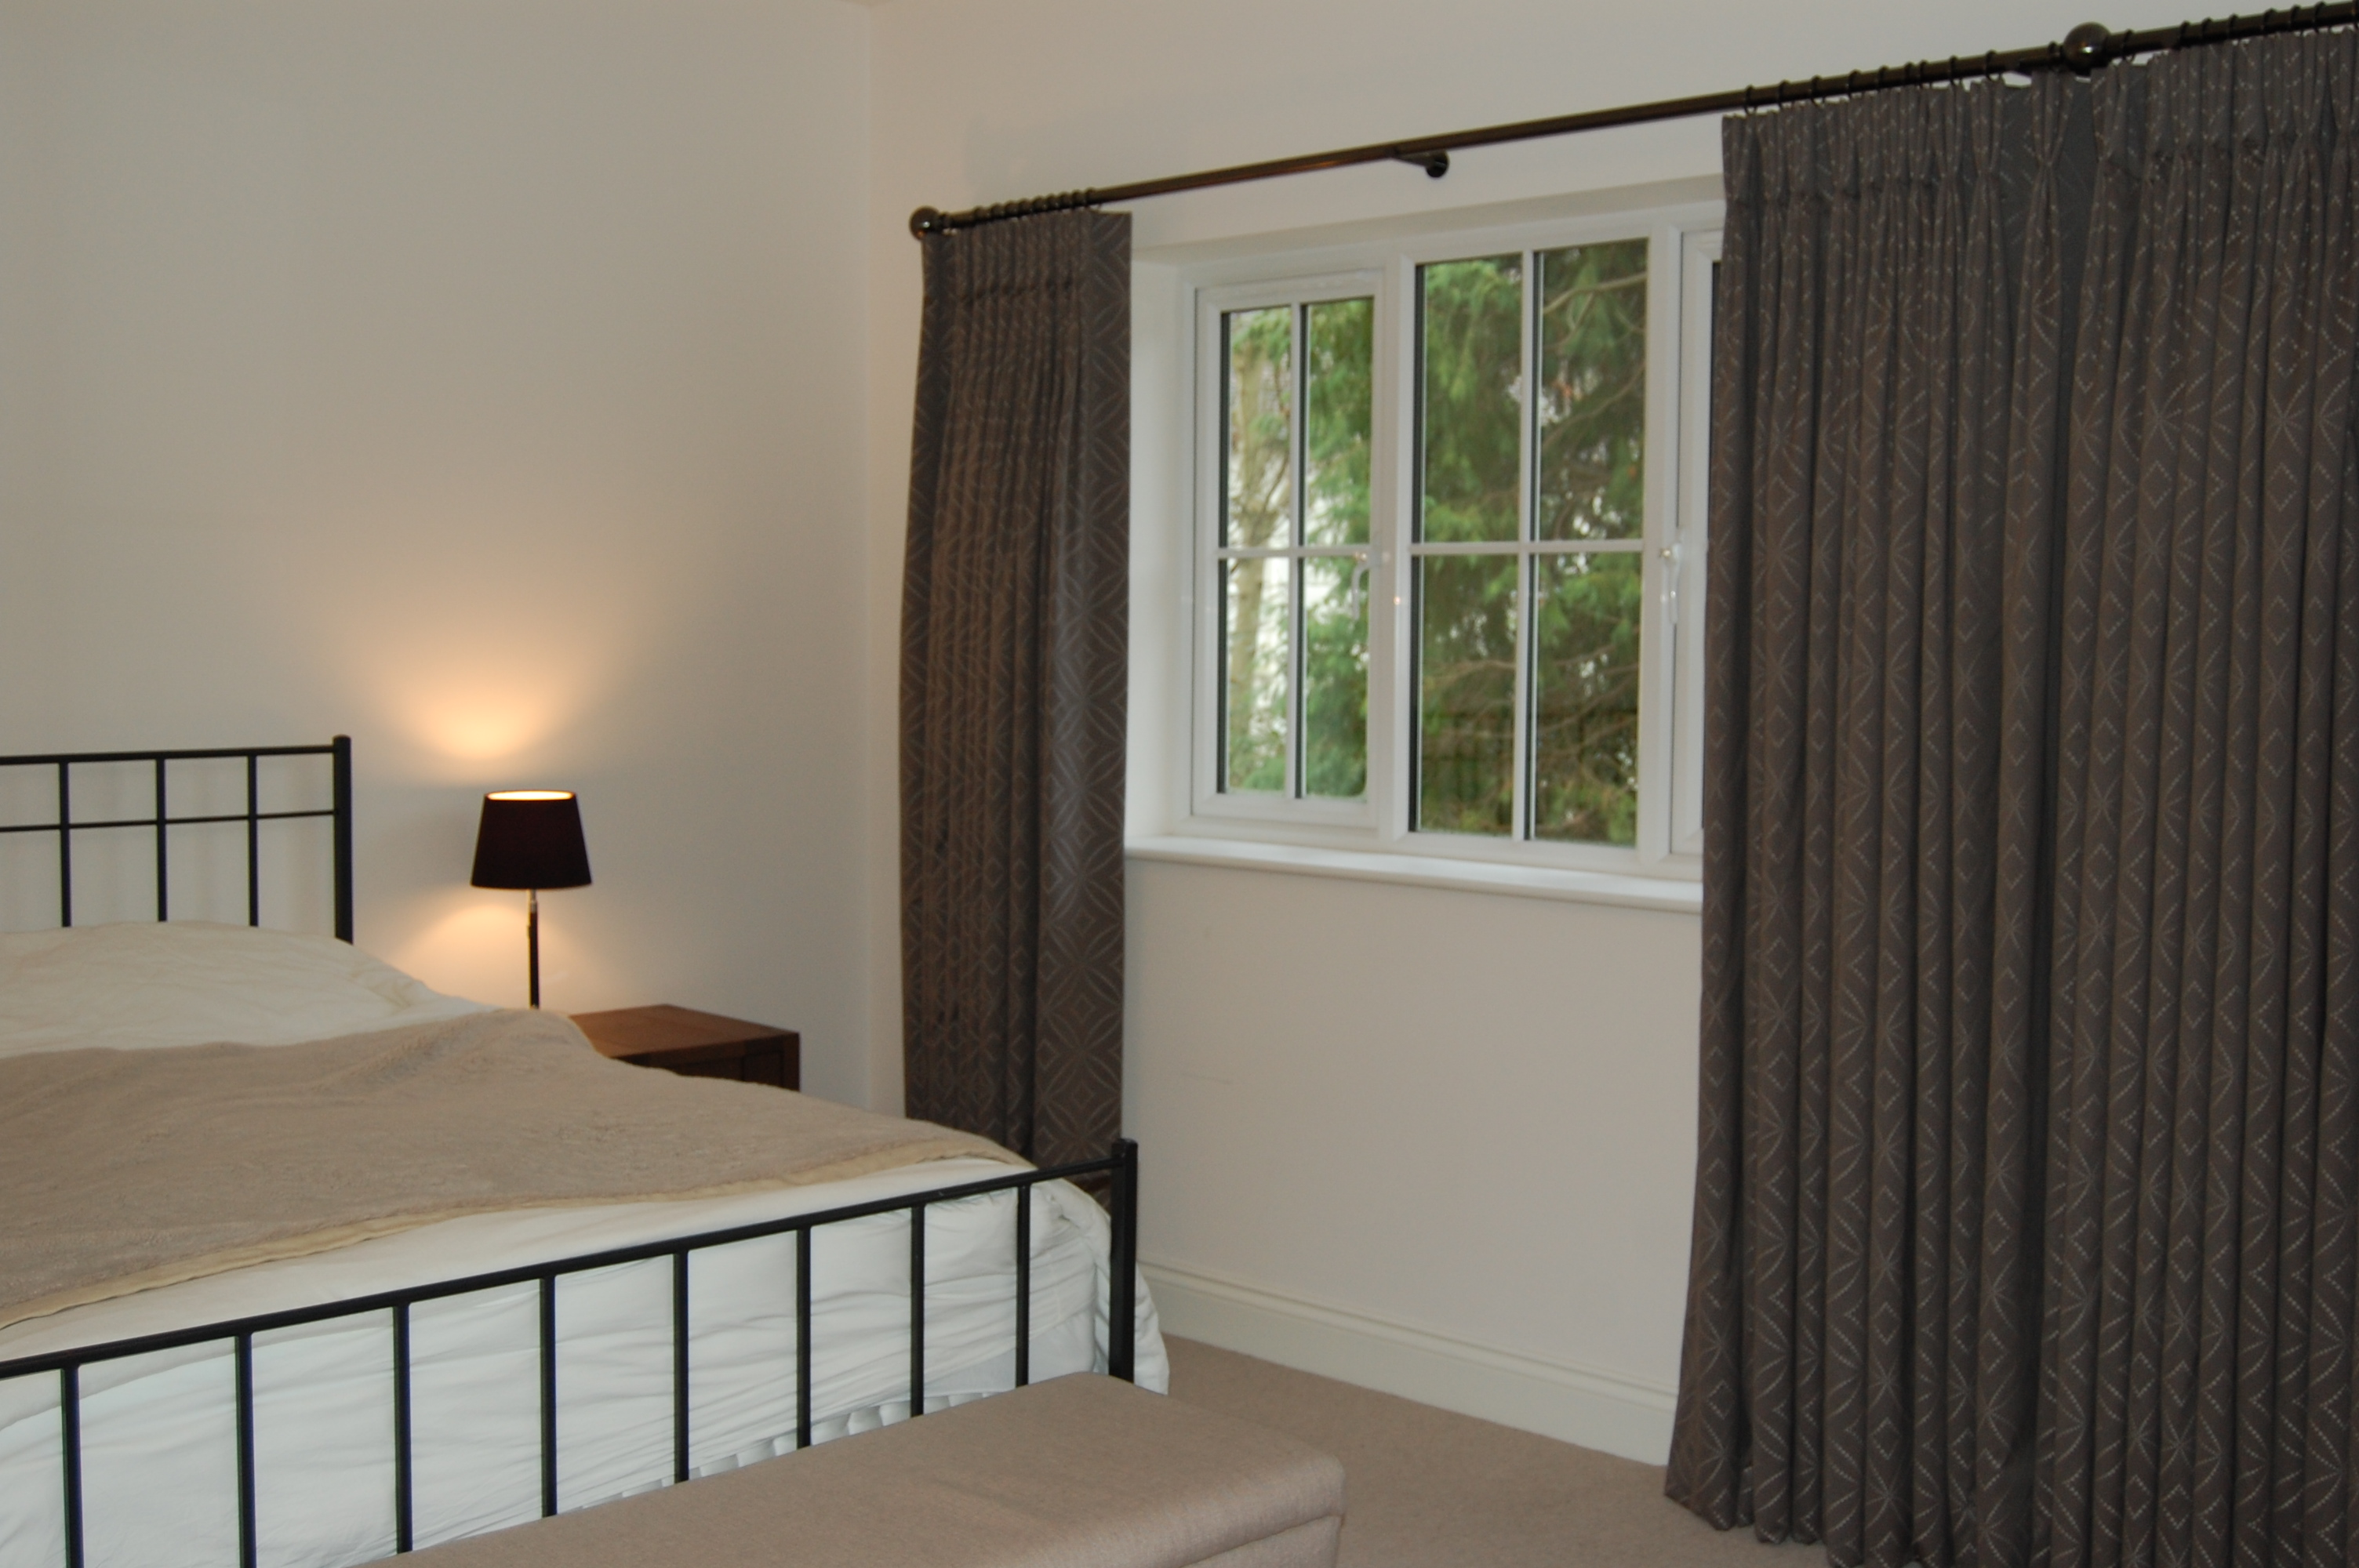 ... curtains. It is a popular heading for hand made, bespoke curtains